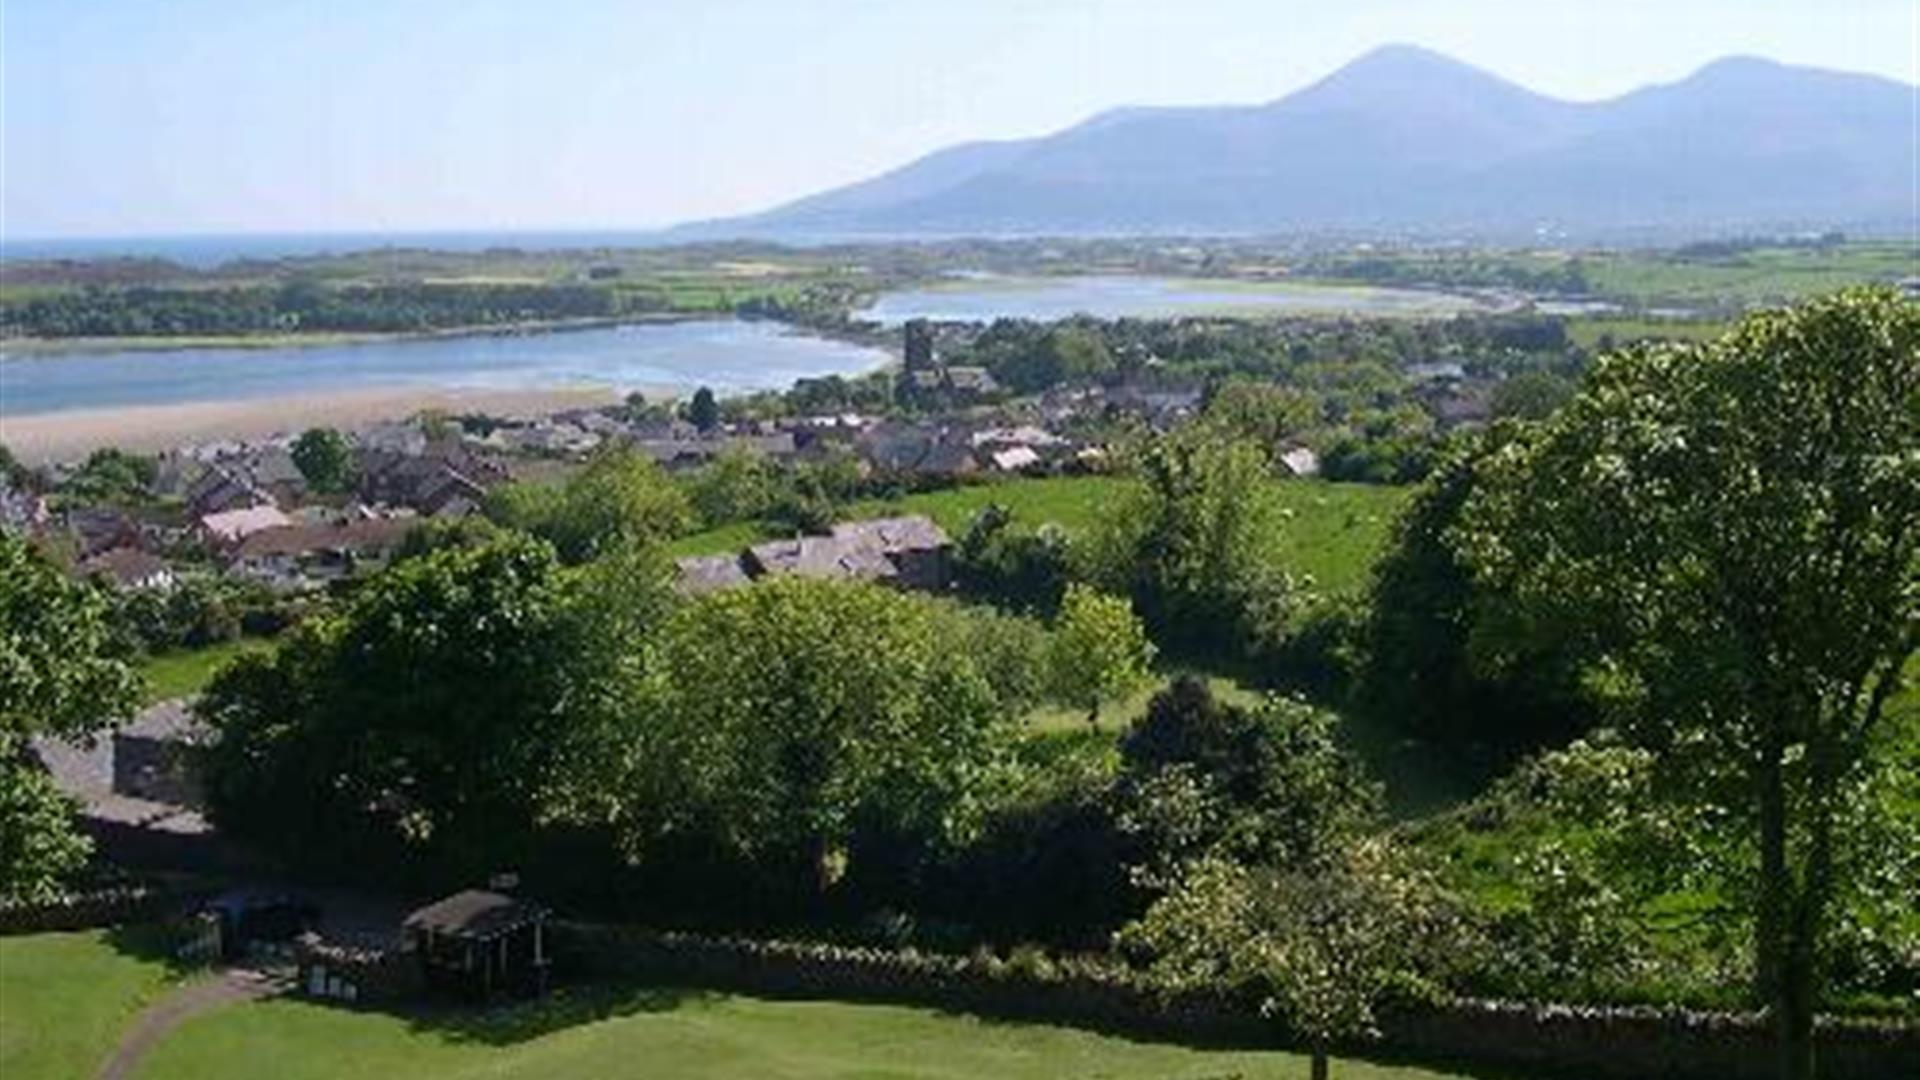 Dundrum Heritage Trail